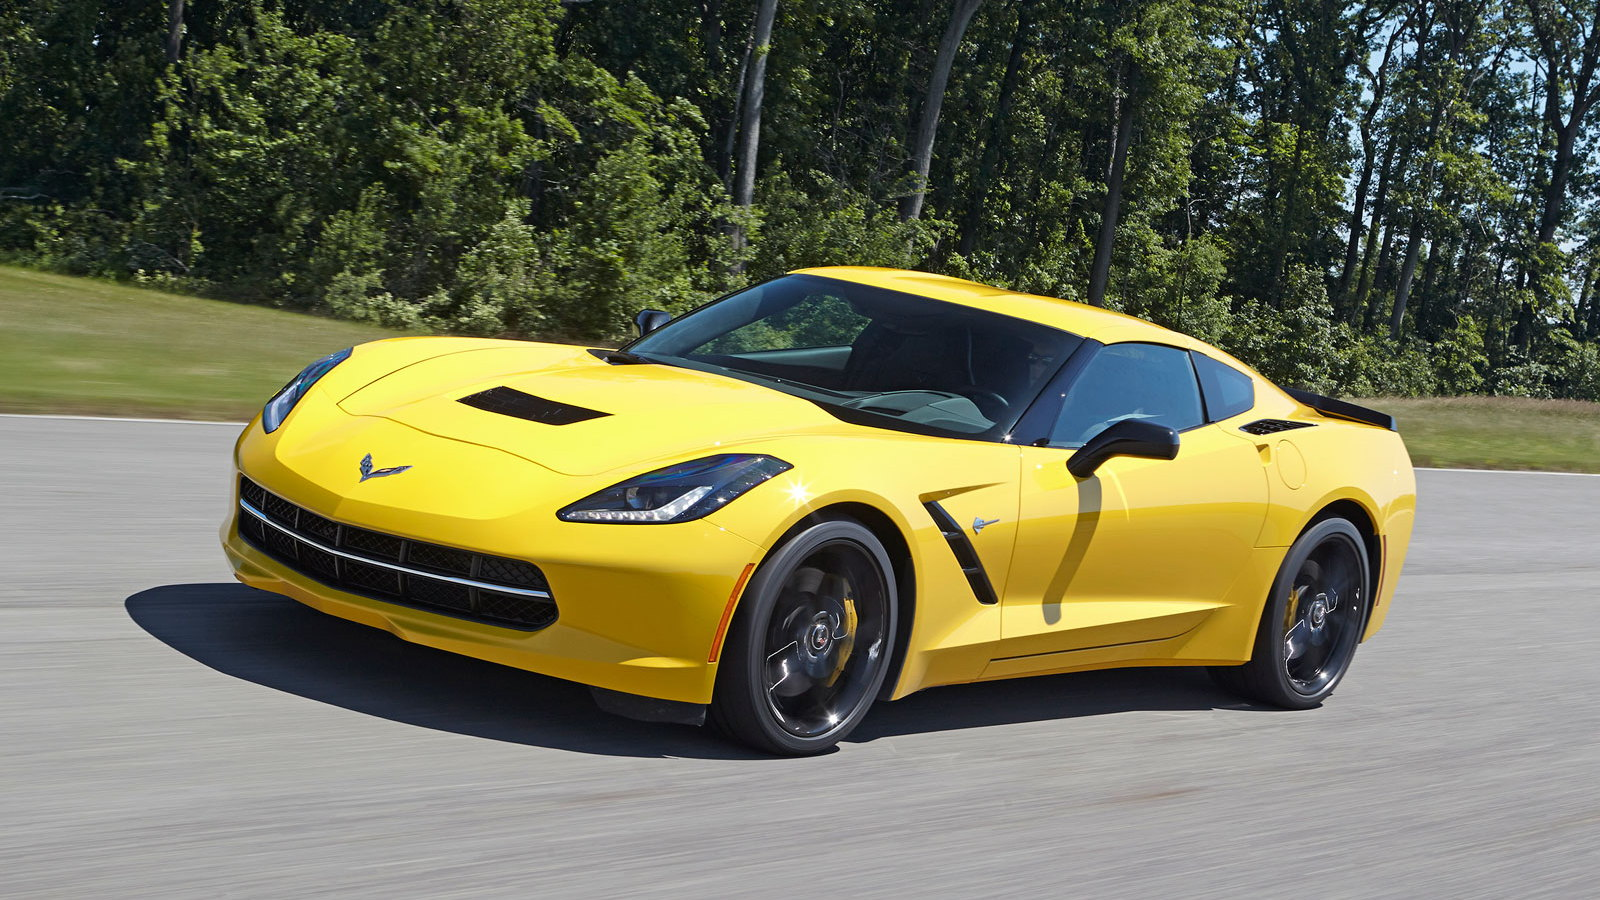 2014 Chevrolet Corvette Stingray Z51 >> 2014 Chevy Corvette Stingray Z51: 0-60 In 3.8 Seconds